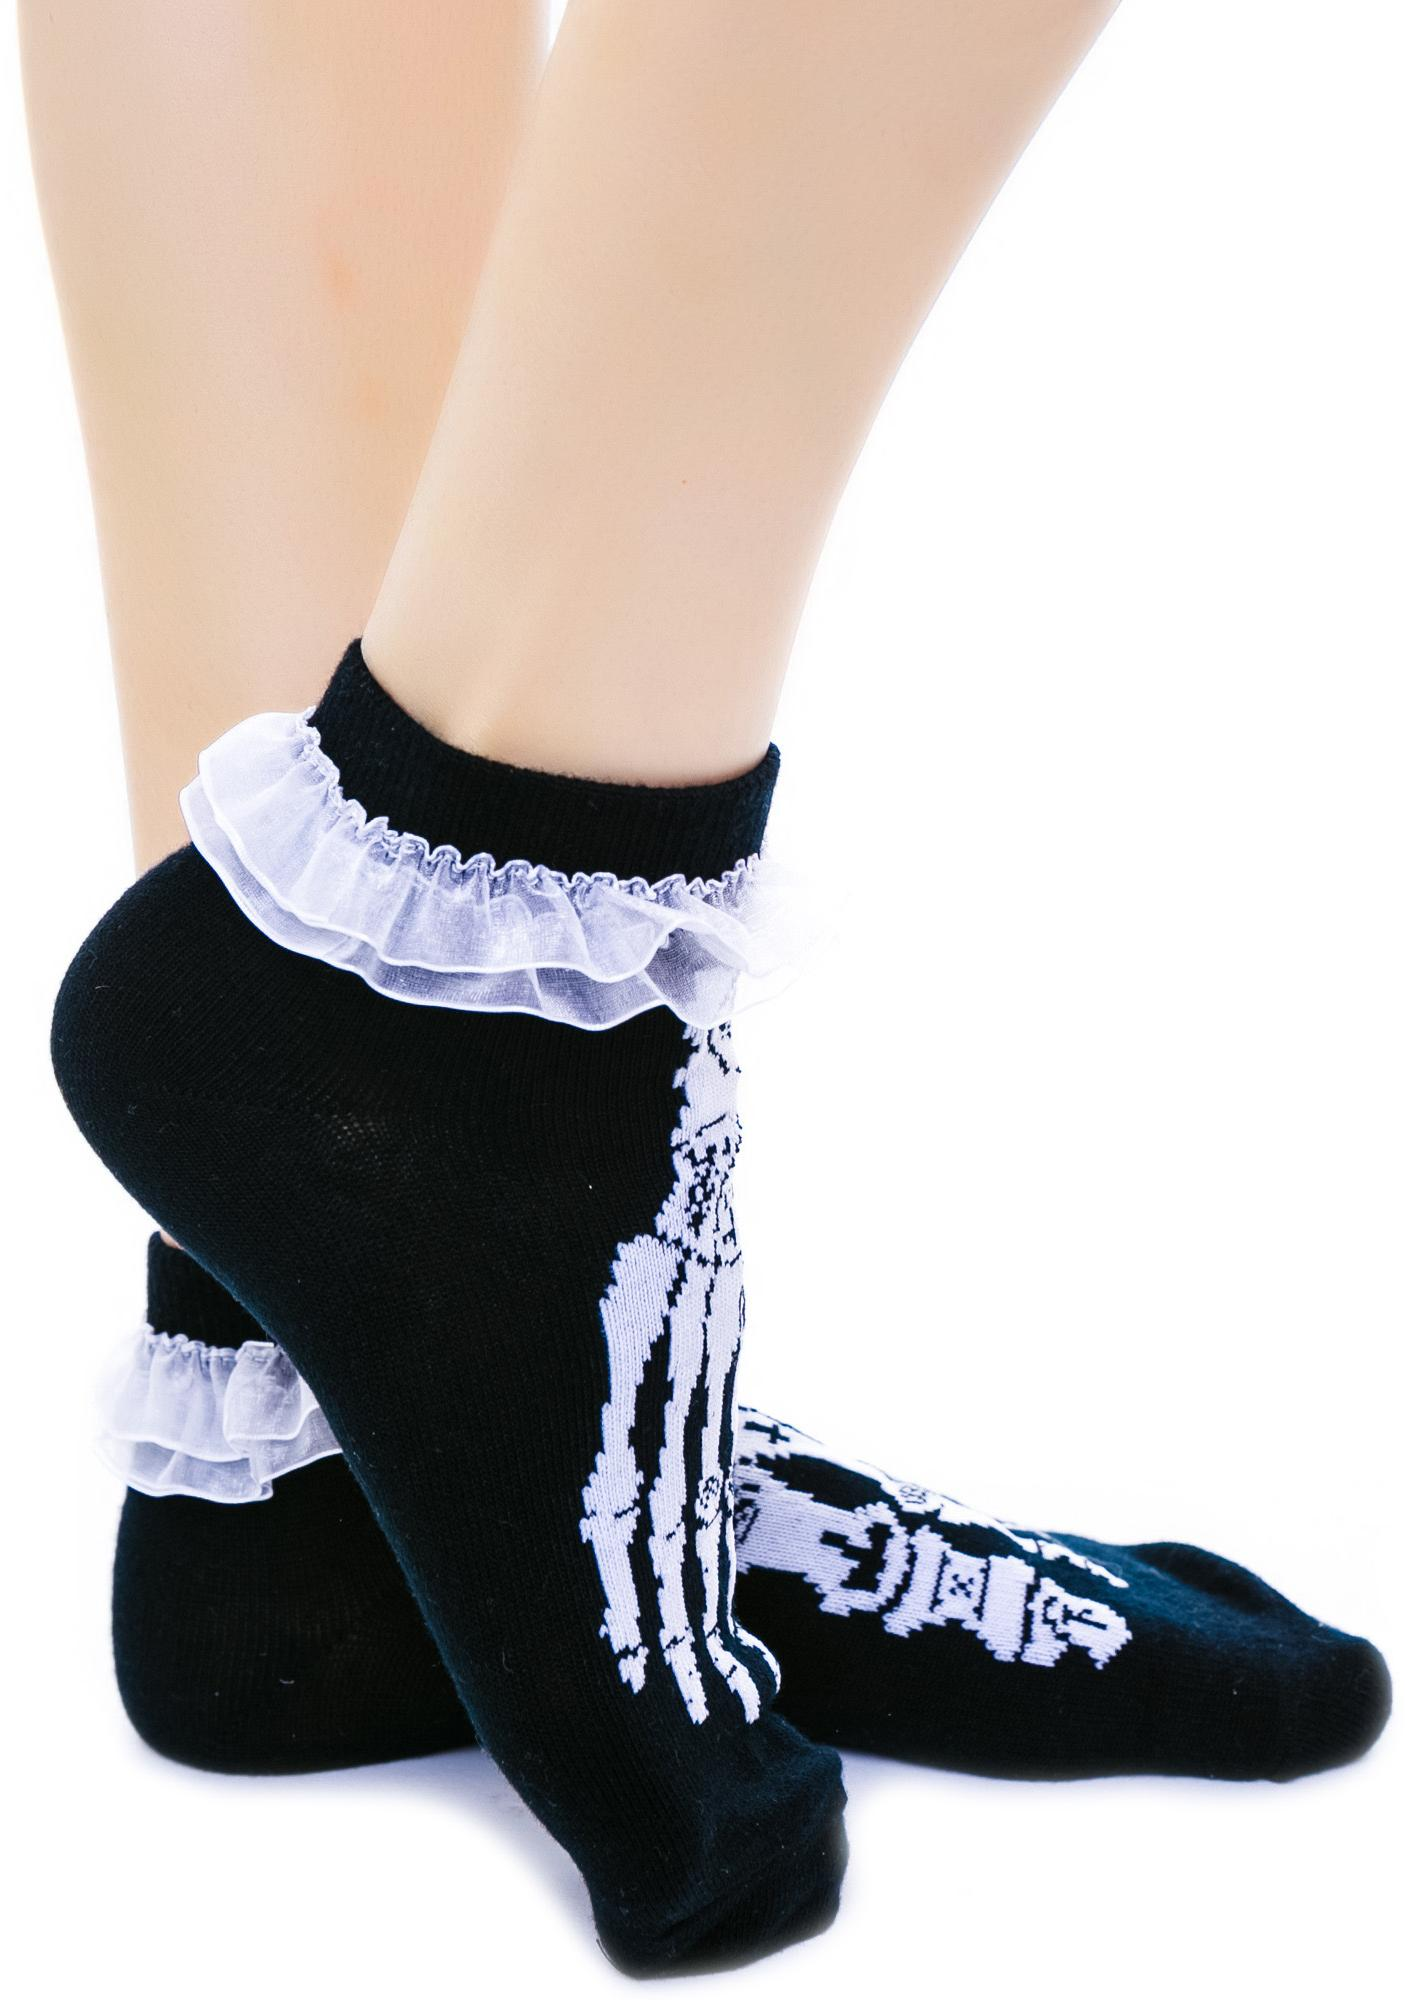 Too Fast Occult Bones Ruffle Ankle Socks